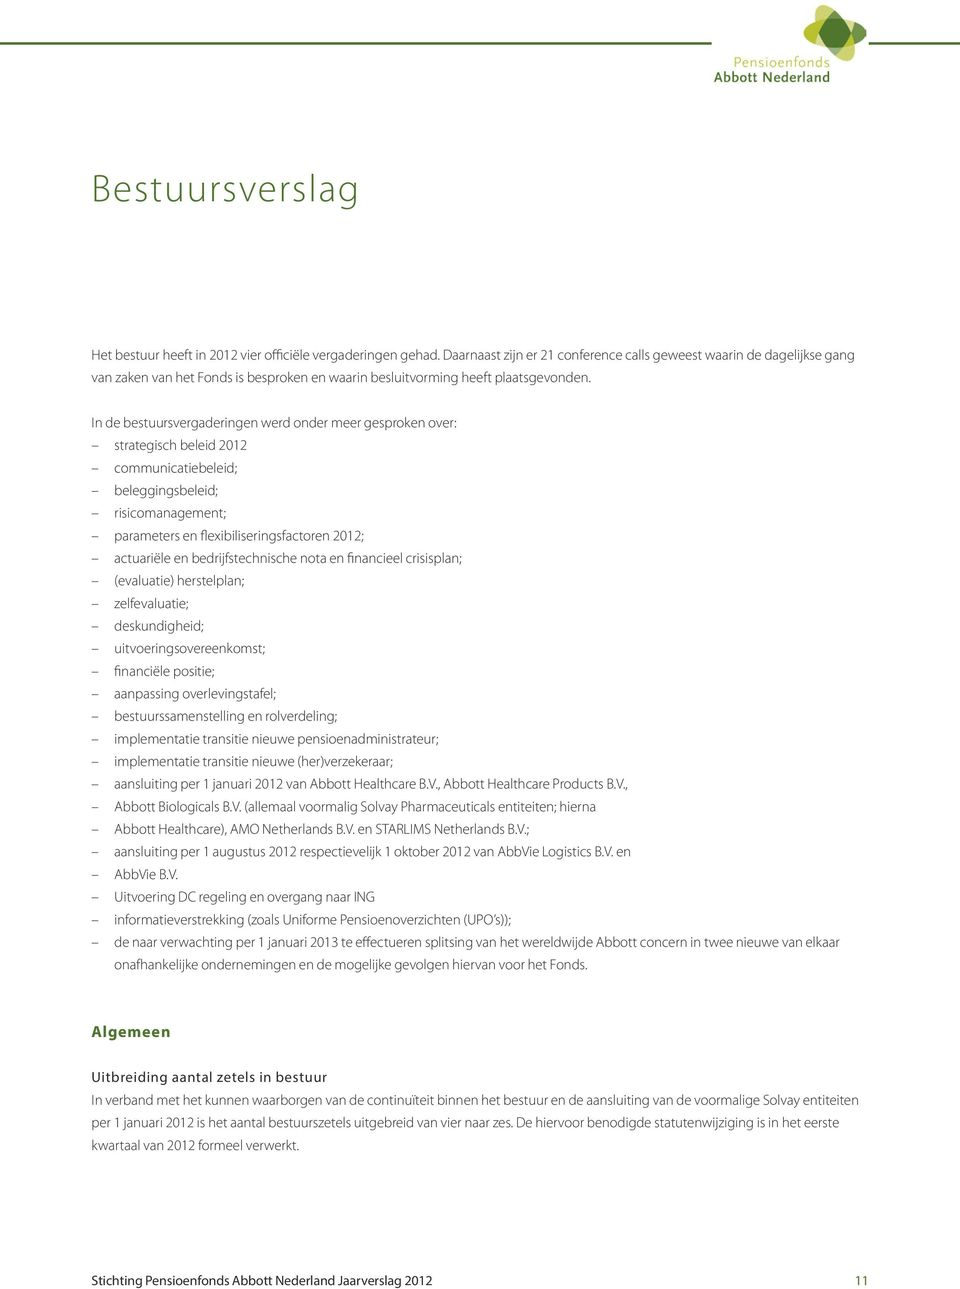 In de bestuursvergaderingen werd onder meer gesproken over: strategisch beleid 2012 communicatiebeleid; beleggingsbeleid; risicomanagement; parameters en flexibiliseringsfactoren 2012; actuariële en